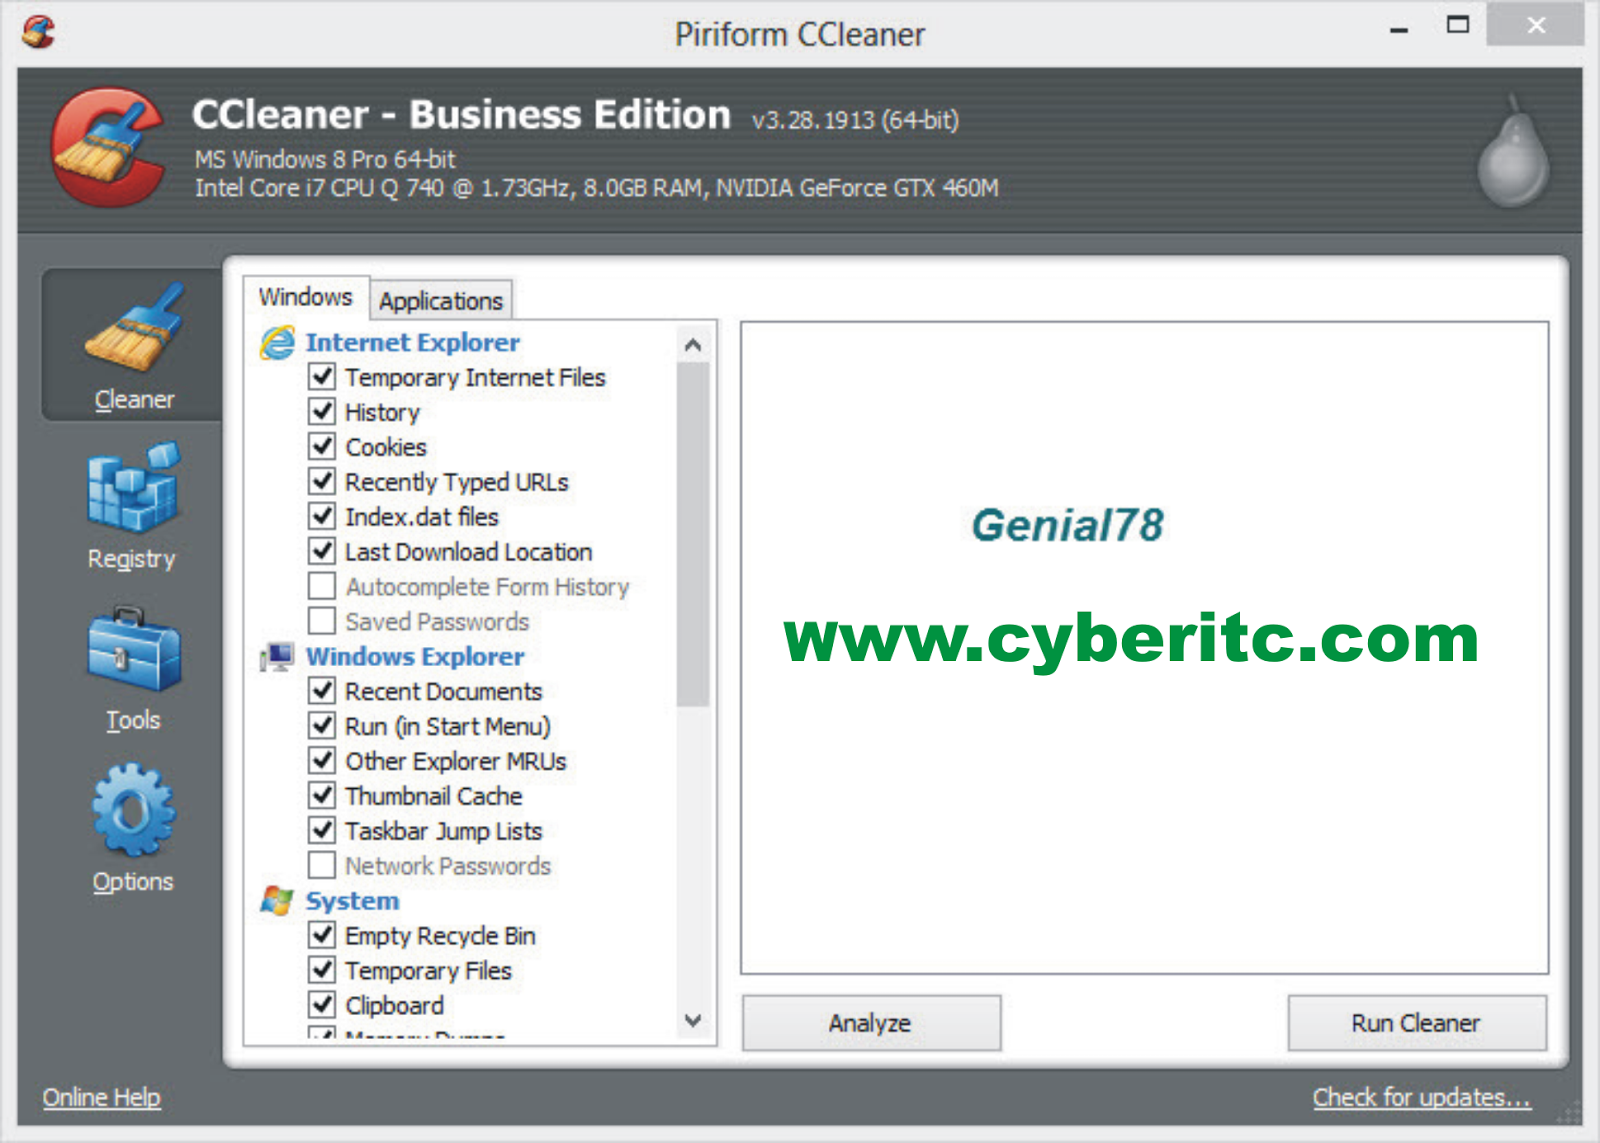 ccleaner 64 bit download free